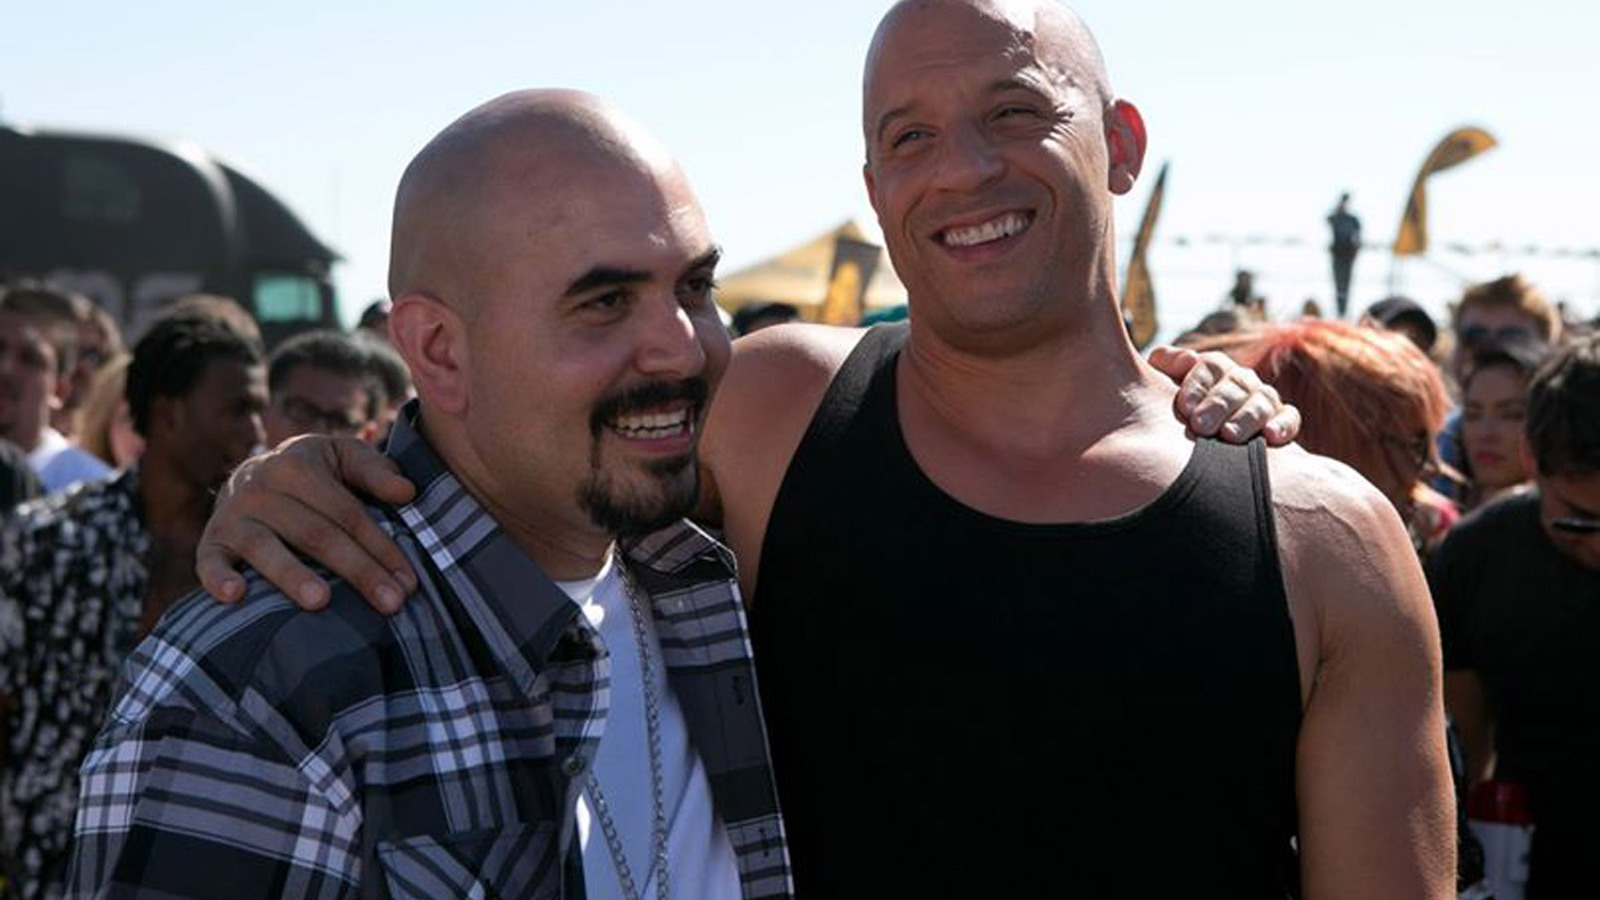 Noel Gugliemi and Vin Diesel in 'Furious 7'